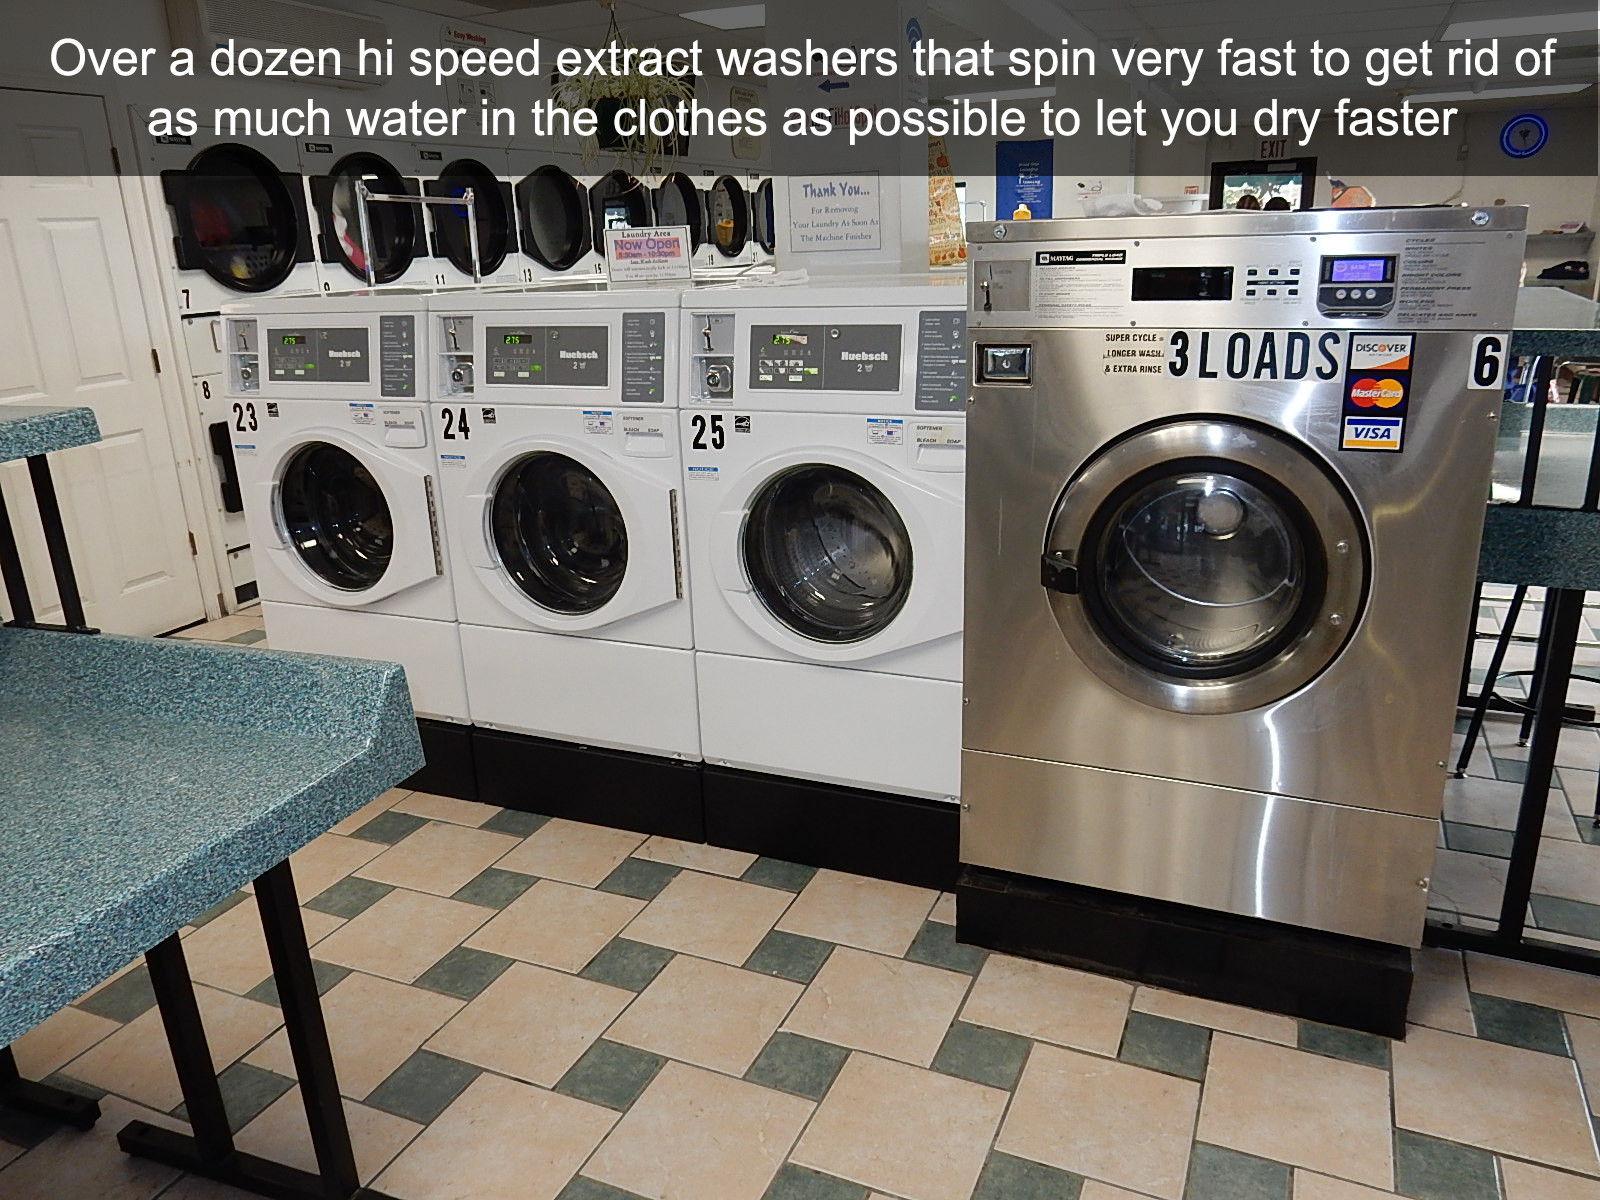 Over a dozen hi speed extract washers that spin very fast to get rid of as much water in the clothes as possible to let you dry faster